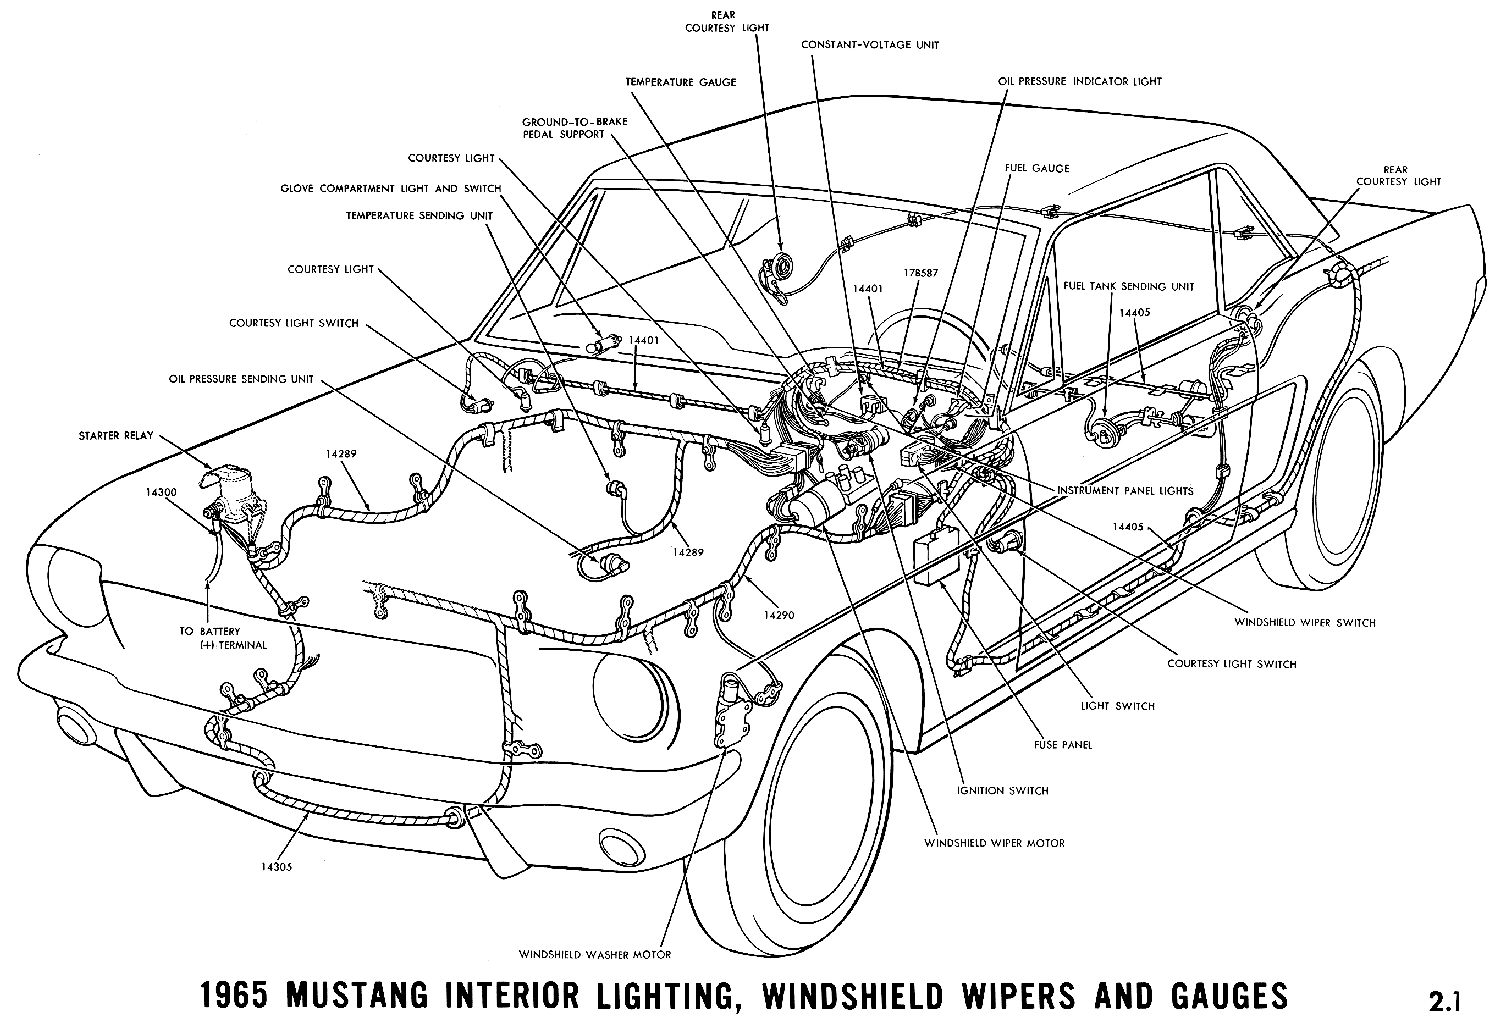 1965 mustang wiring diagrams - average joe restoration 1970 mustang wiring harness diagram 1965 mustang wiring harness diagram